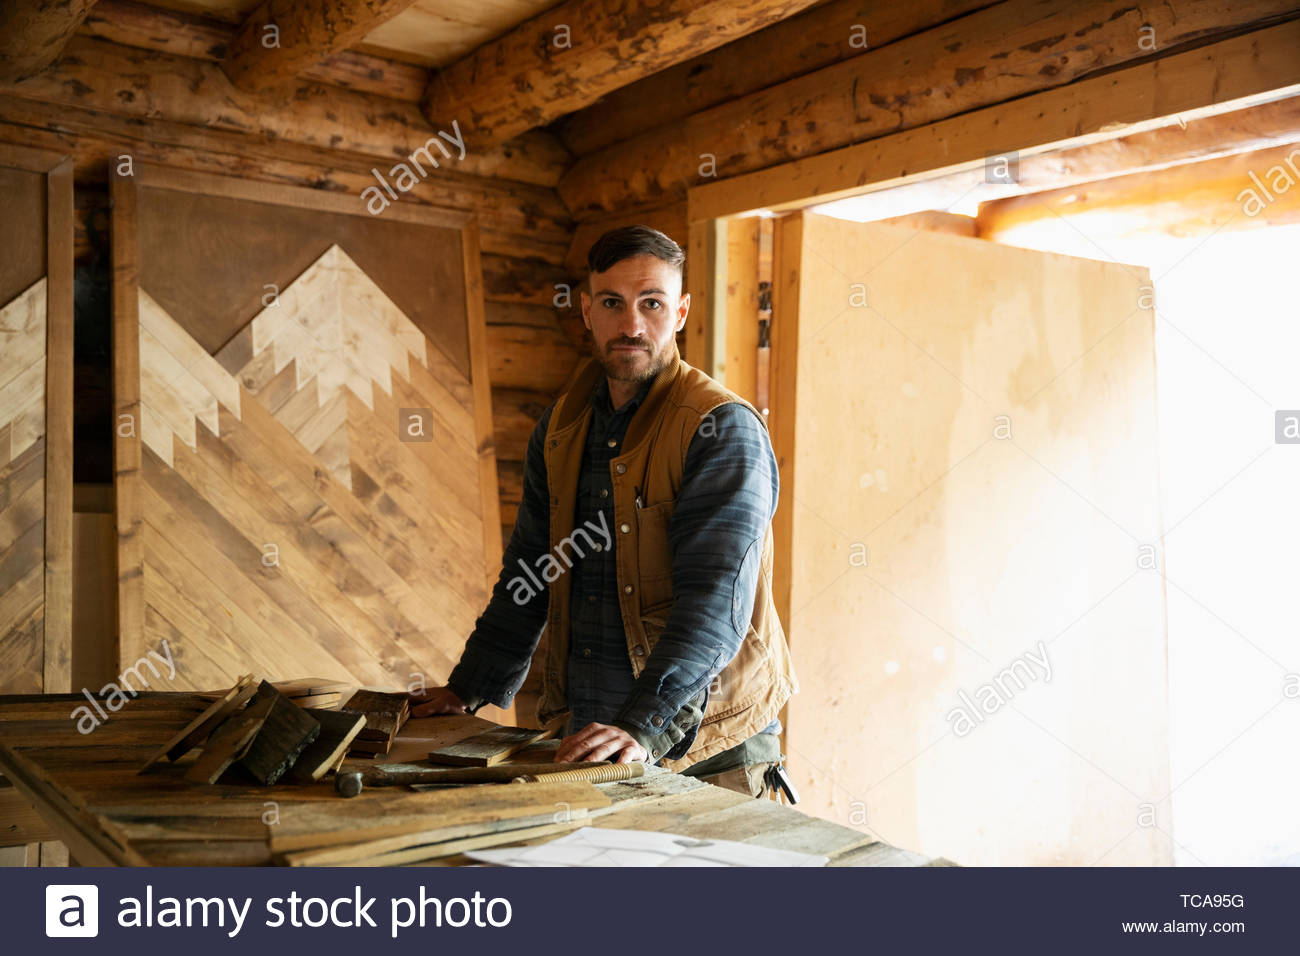 Portrait confident man woodworking in workshop - Stock Image